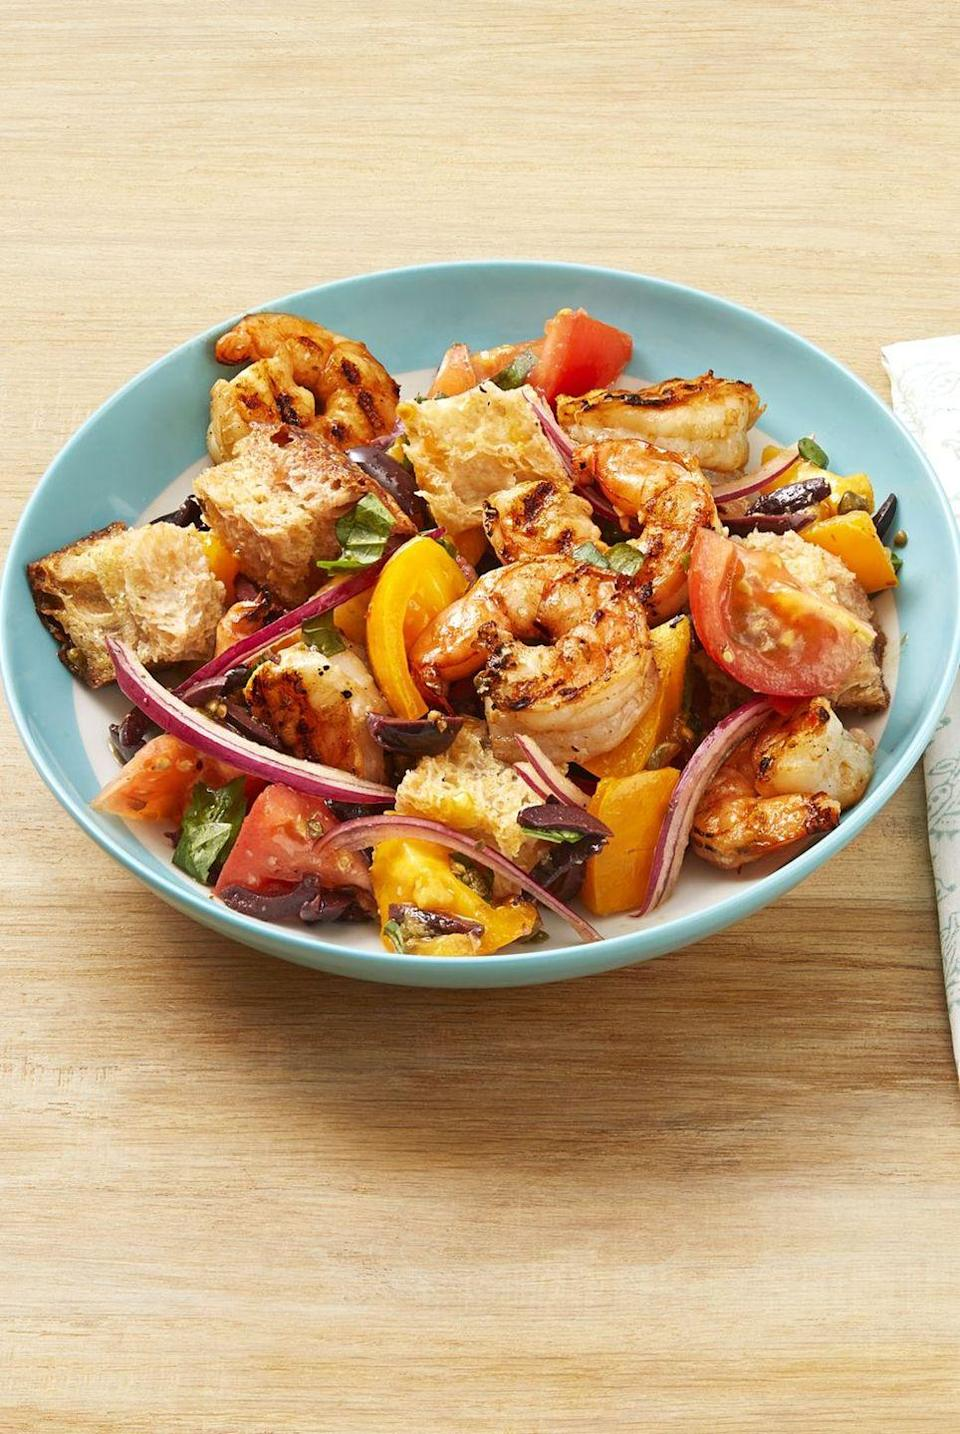 """<p>Once you try this panzanella salad, you'll never look at salad the same way again. With chunks of crusty bread, fresh tomatoes, and grilled shrimp, this flavorful dish will become a summer staple. </p><p><a href=""""https://www.thepioneerwoman.com/food-cooking/recipes/a32528706/grilled-shrimp-panzanella-recipe/"""" rel=""""nofollow noopener"""" target=""""_blank"""" data-ylk=""""slk:Get Ree's recipe."""" class=""""link rapid-noclick-resp""""><strong>Get Ree's recipe. </strong></a></p><p><a class=""""link rapid-noclick-resp"""" href=""""https://go.redirectingat.com?id=74968X1596630&url=https%3A%2F%2Fwww.walmart.com%2Fsearch%2F%3Fquery%3Dpioneer%2Bwoman%2Bsalad%2Bbowls&sref=https%3A%2F%2Fwww.thepioneerwoman.com%2Ffood-cooking%2Fmeals-menus%2Fg36500577%2Ftomato-recipes%2F"""" rel=""""nofollow noopener"""" target=""""_blank"""" data-ylk=""""slk:SHOP SALAD BOWLS"""">SHOP SALAD BOWLS</a></p>"""